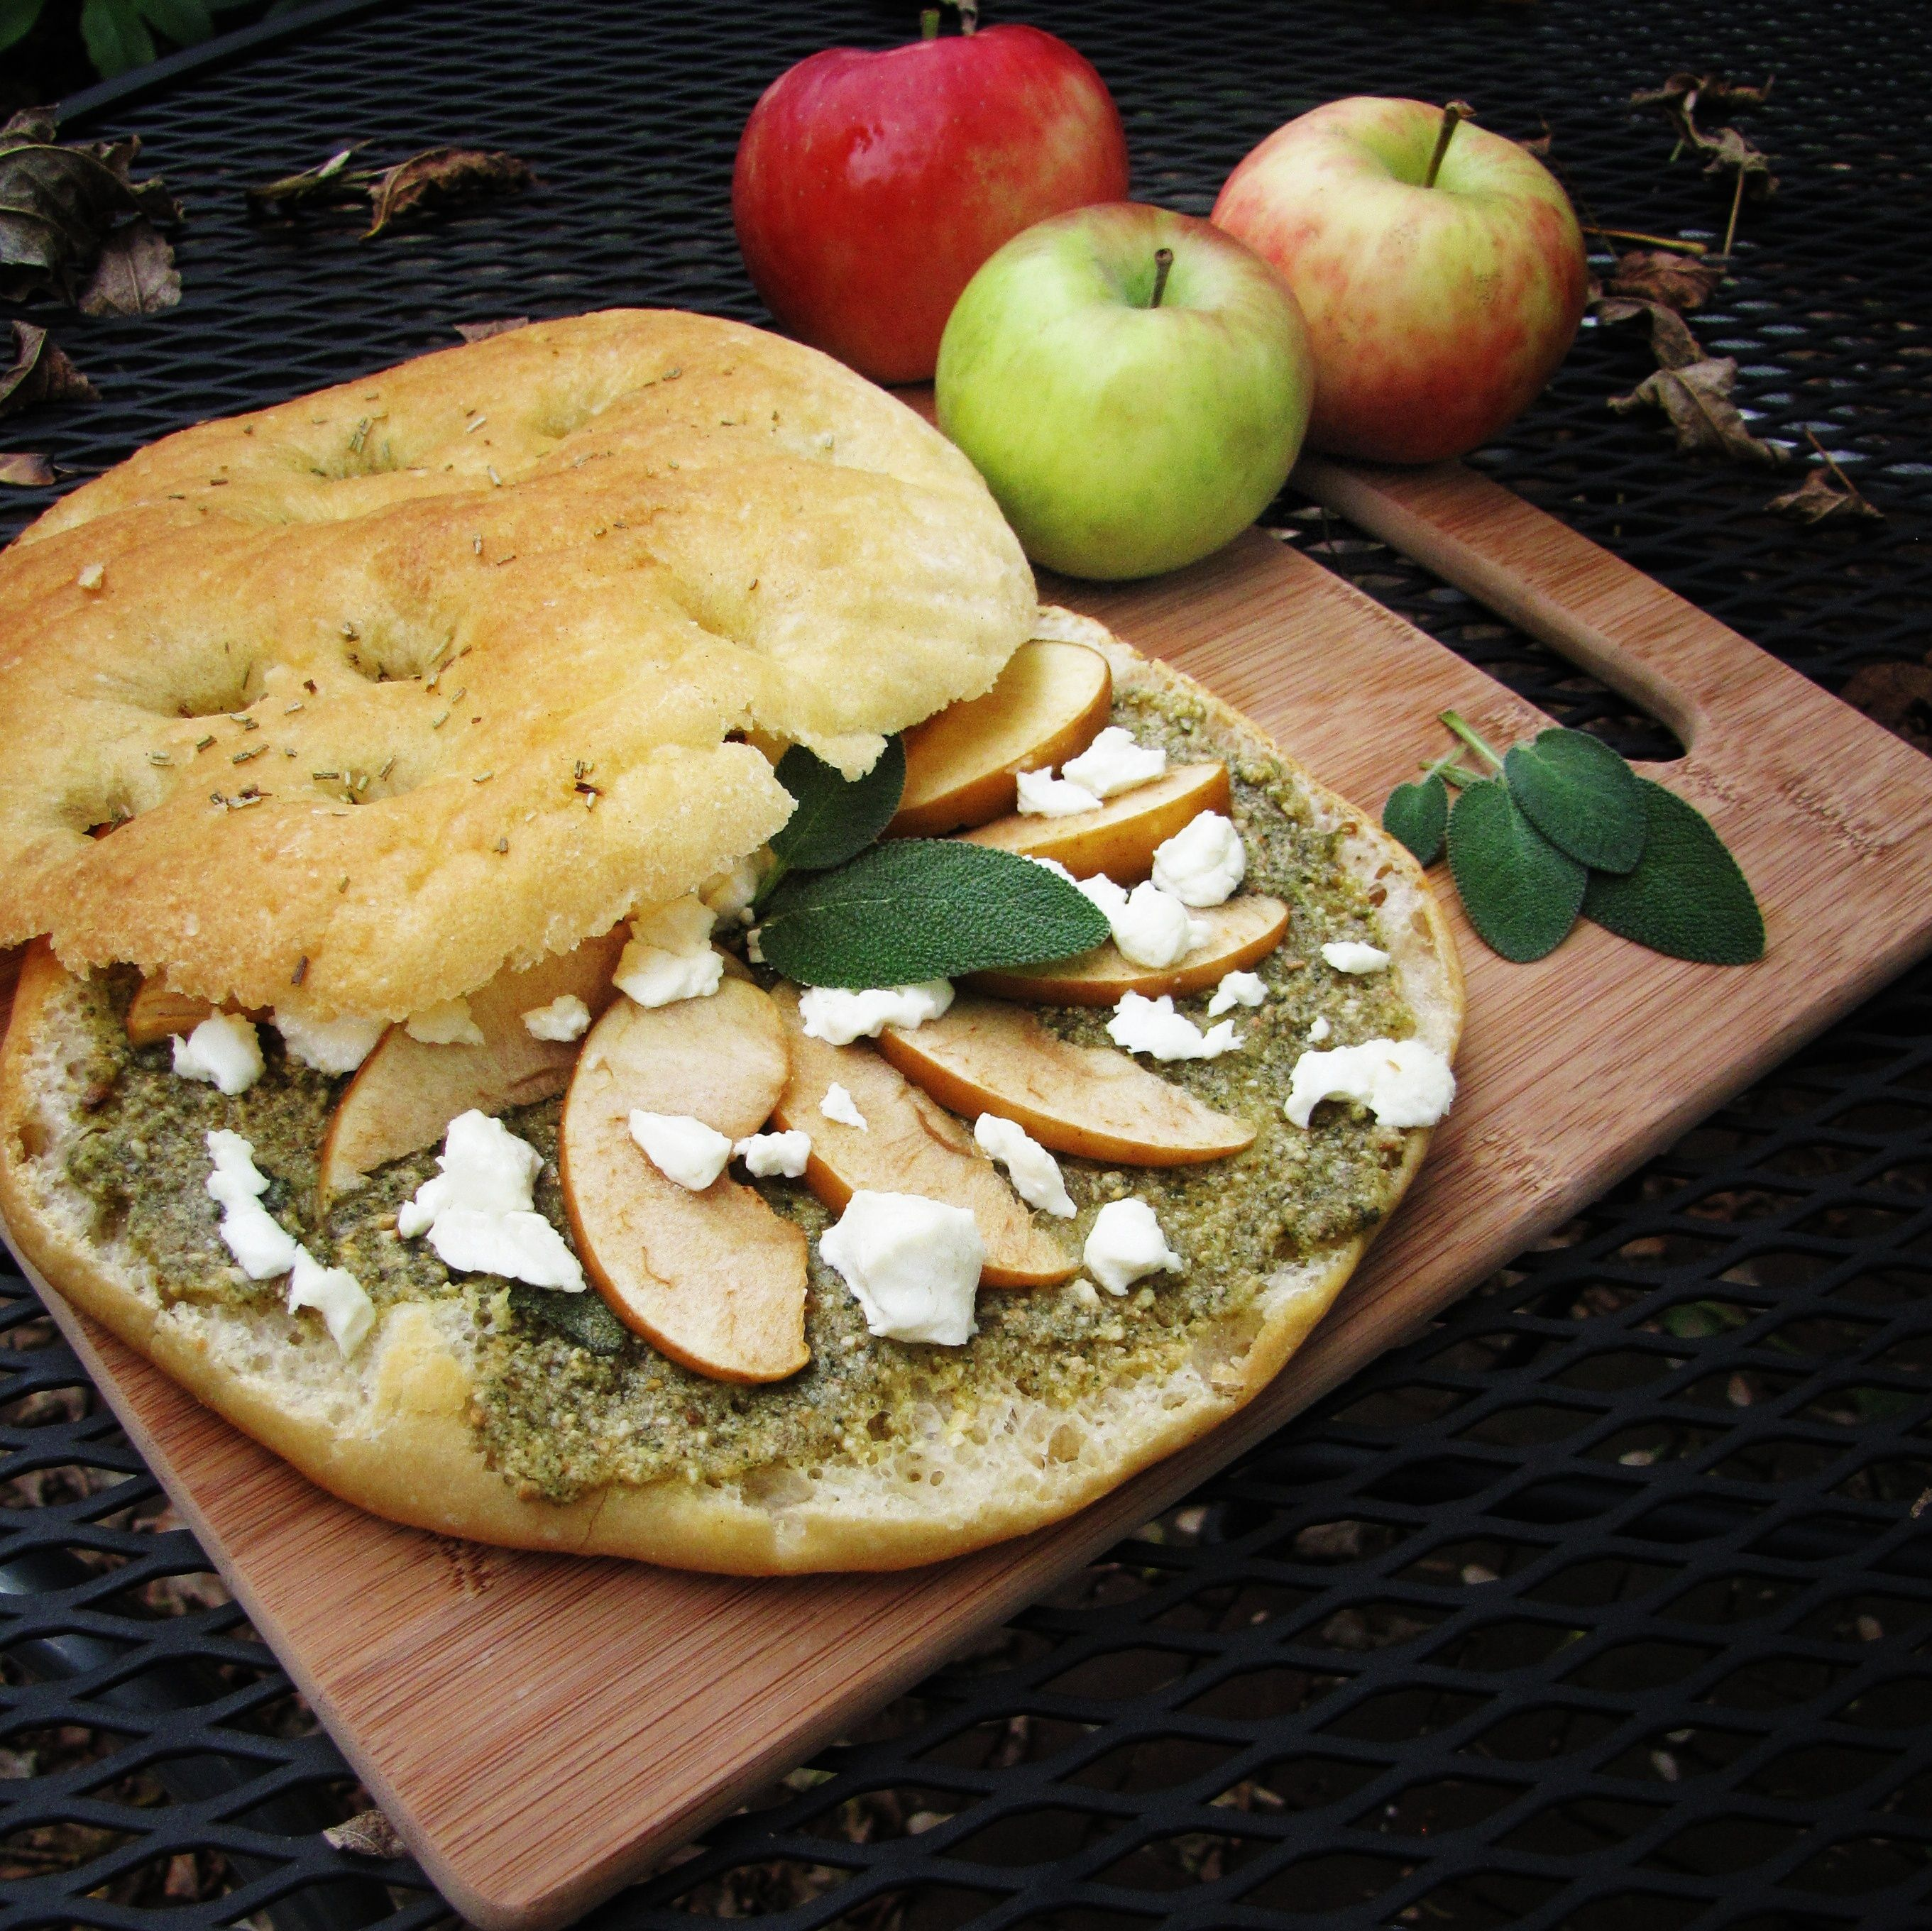 Sage Pesto, Apples, and Fall -- the sage pesto is tasty!  I'm thinking of roasting fingerling potatoes and/or squash with it, and making a sandwich with proscuitto and apples.